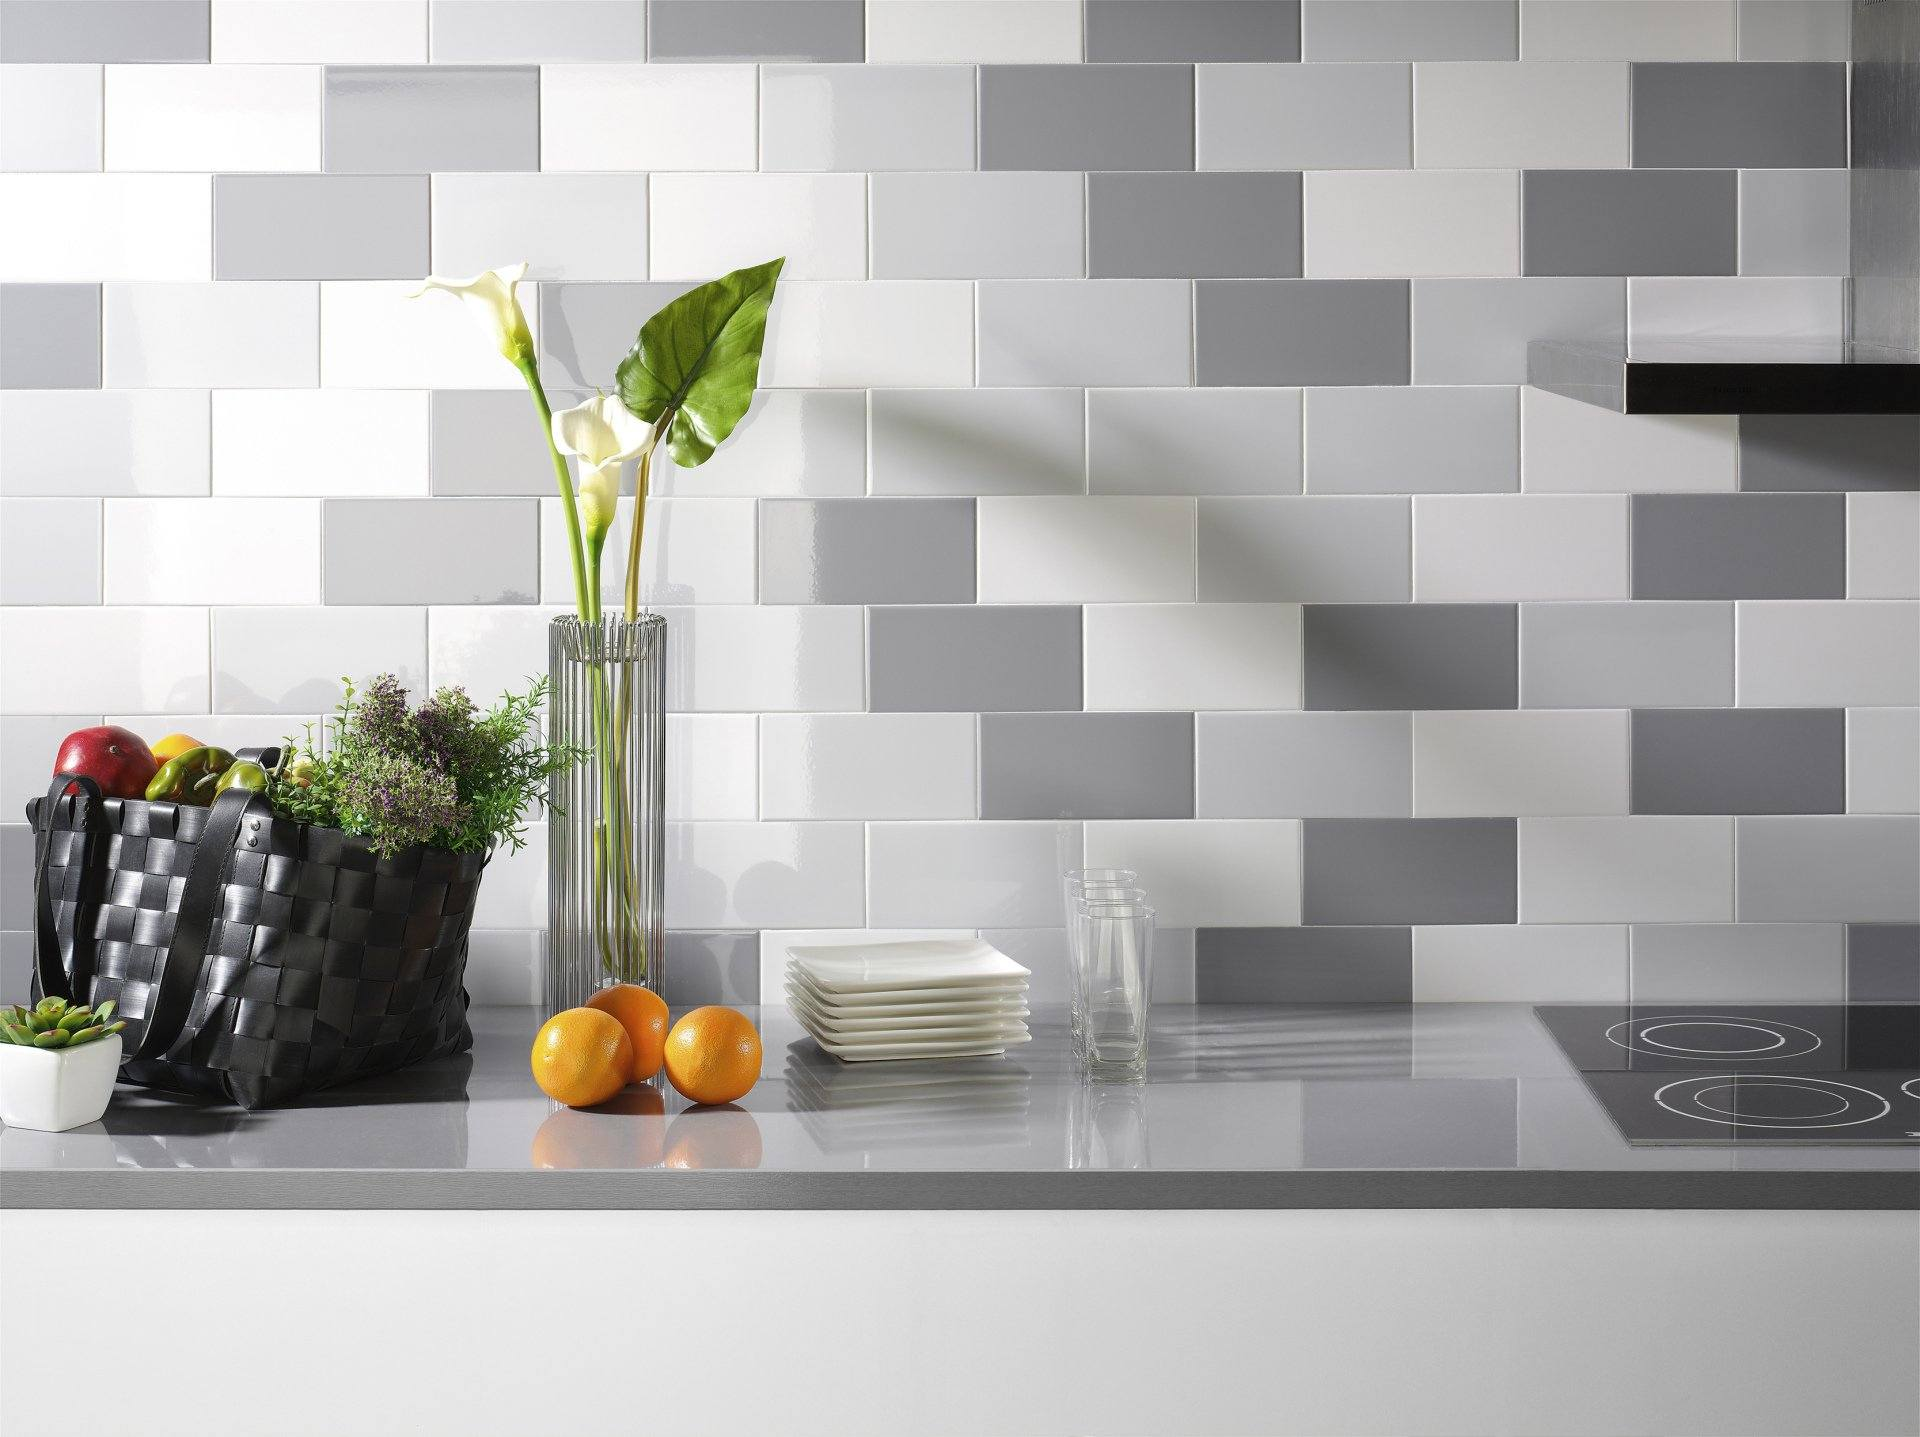 Kitchen Splashback Tile: Best Design and Decoration Ideas. Gray touch in the kitchen wall